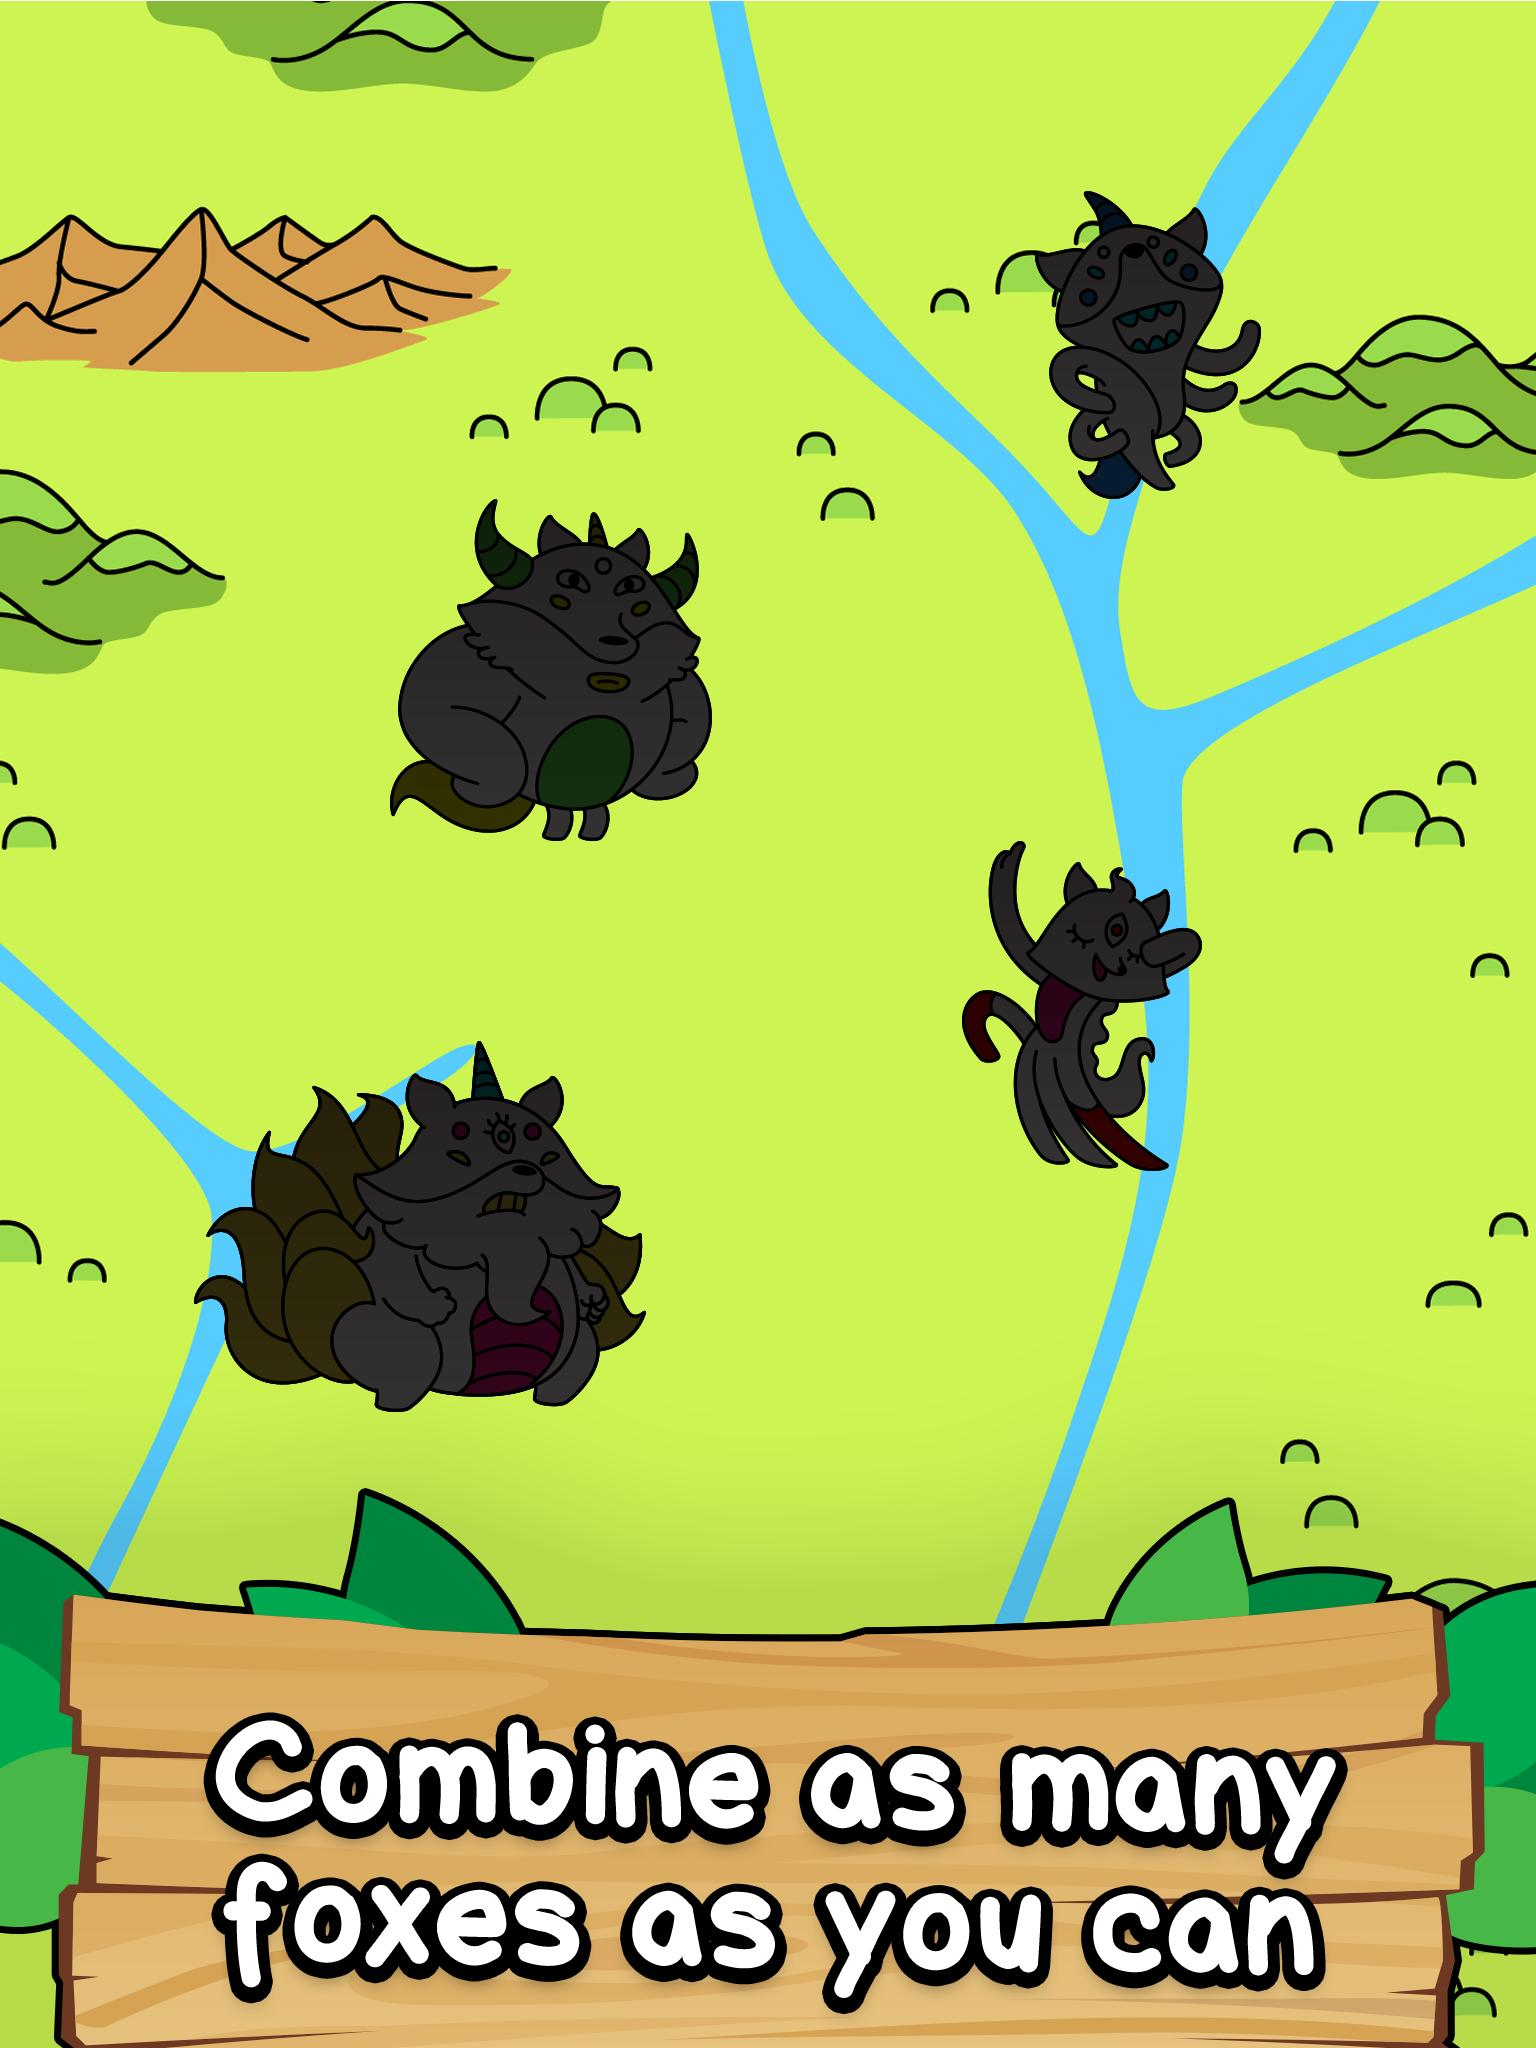 Fox Evolution The Secret of The Mutant Foxes 1.0.5 Screenshot 7